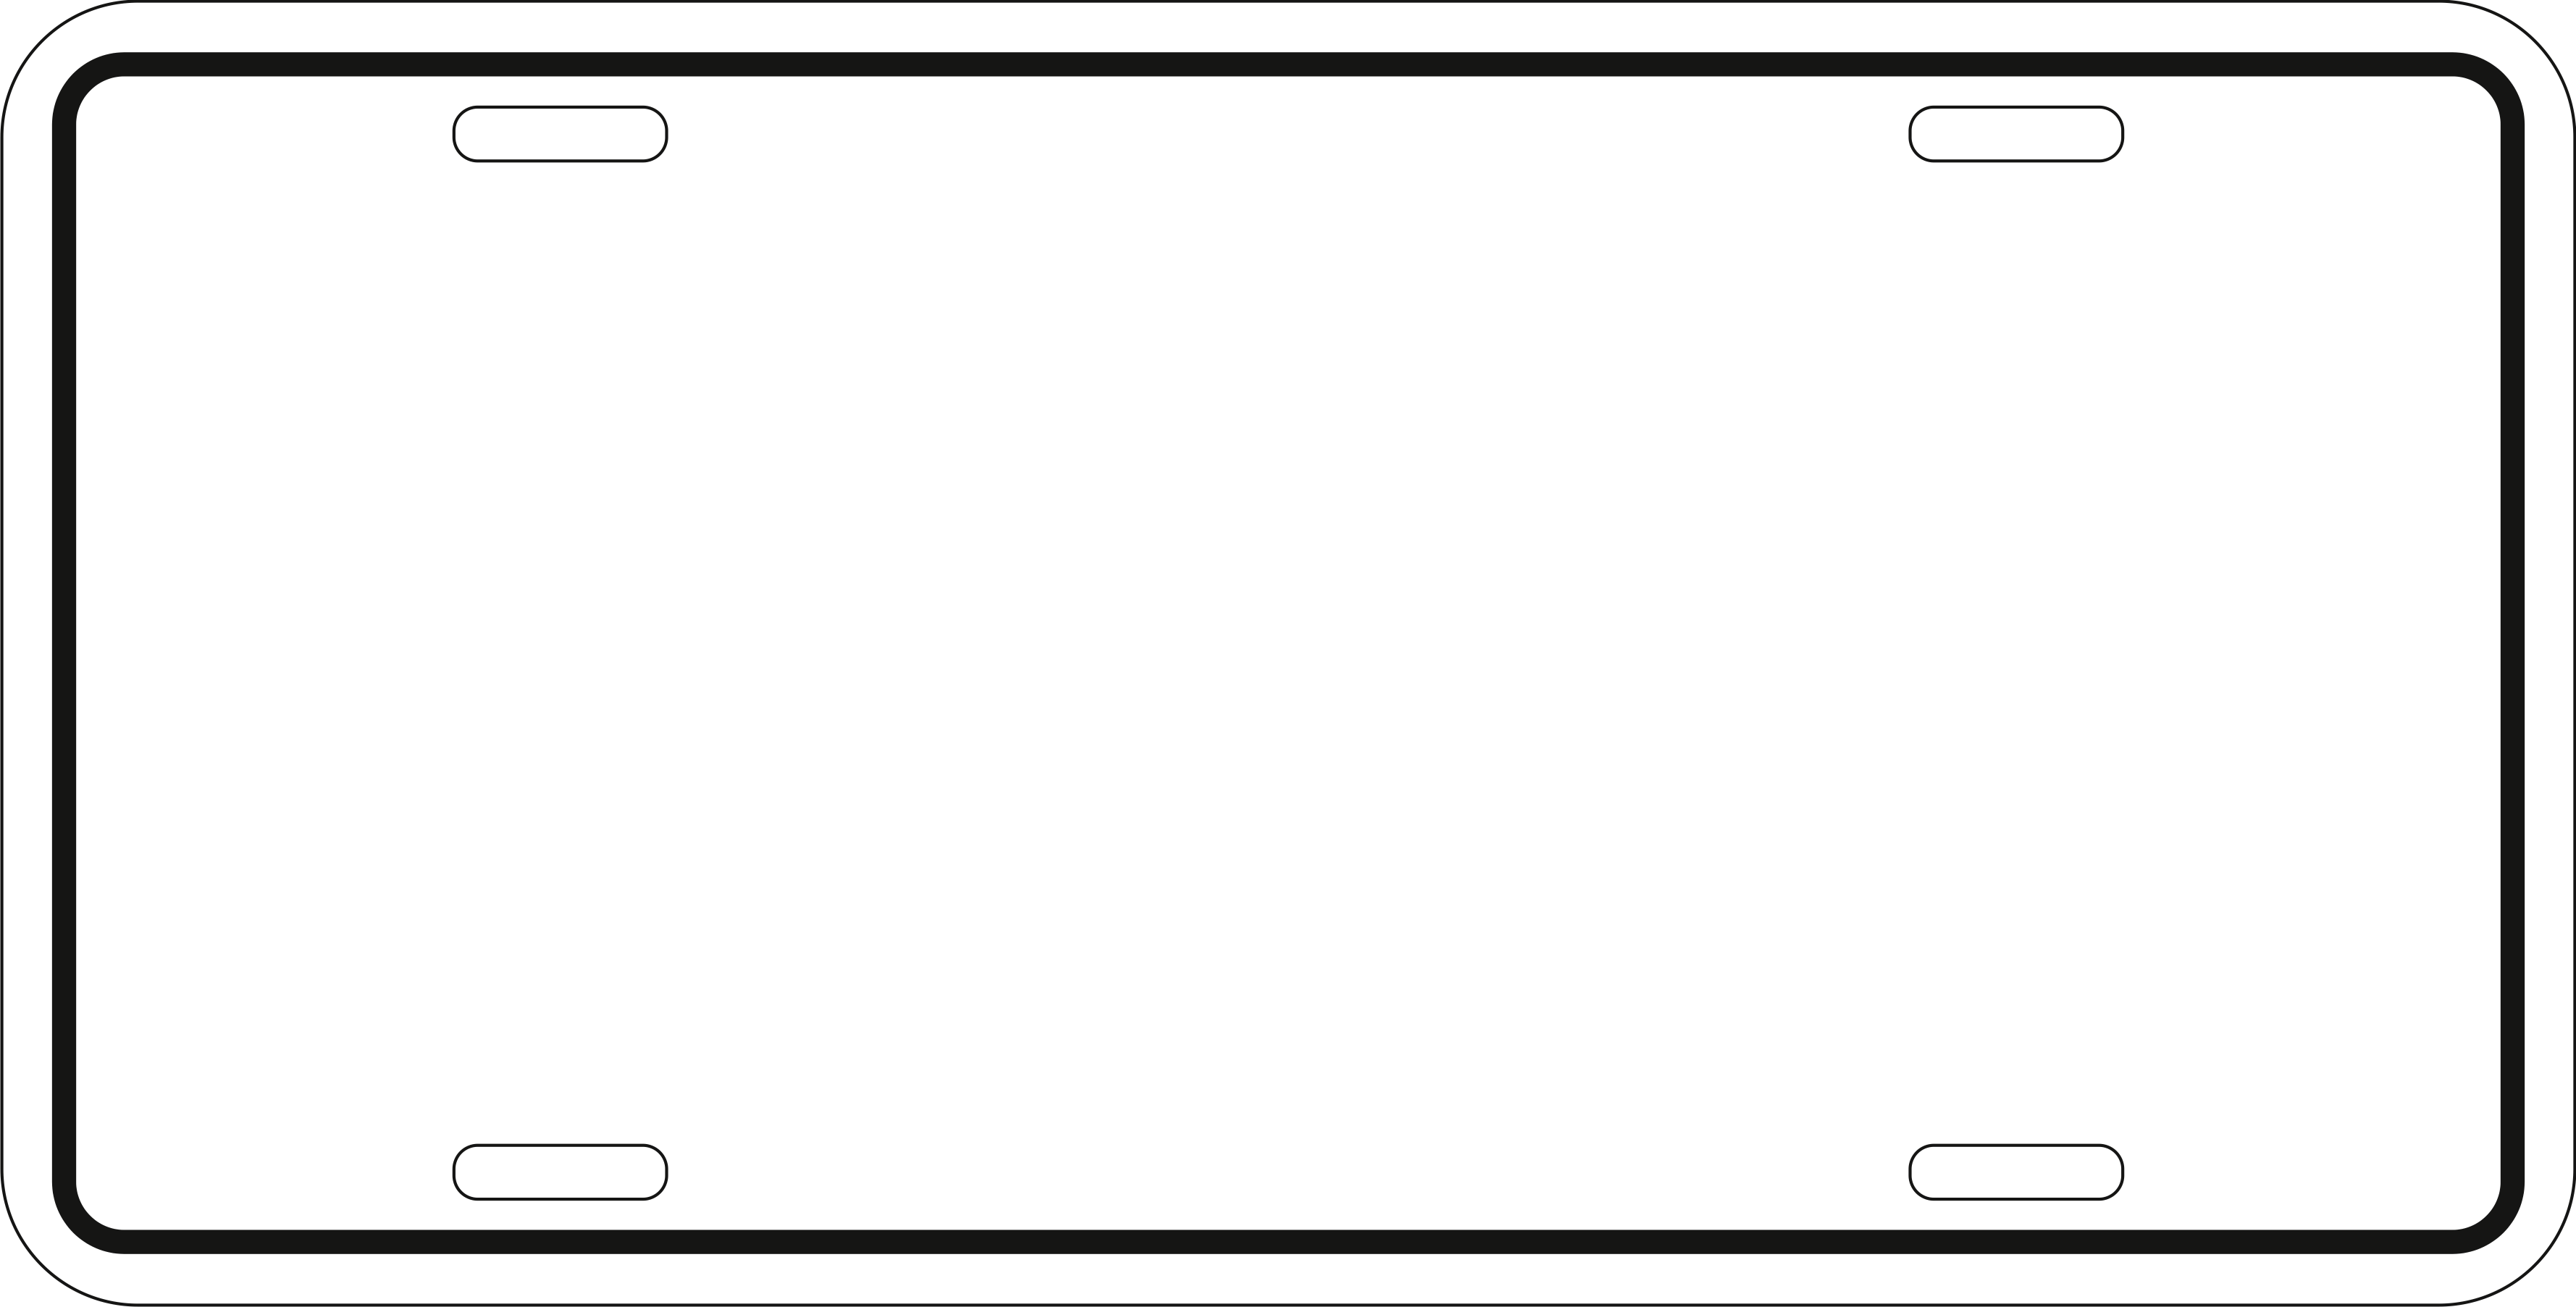 printable license plate template.